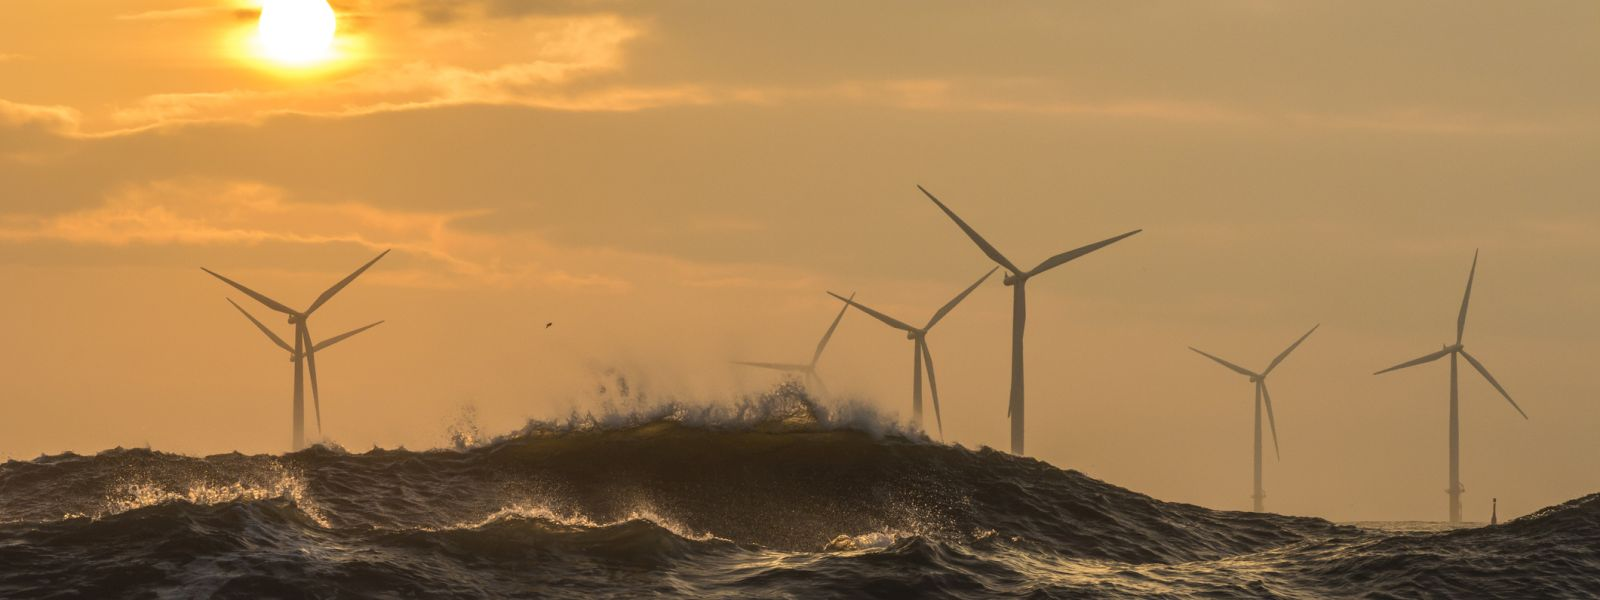 Offshore wind turbines behind large waves.